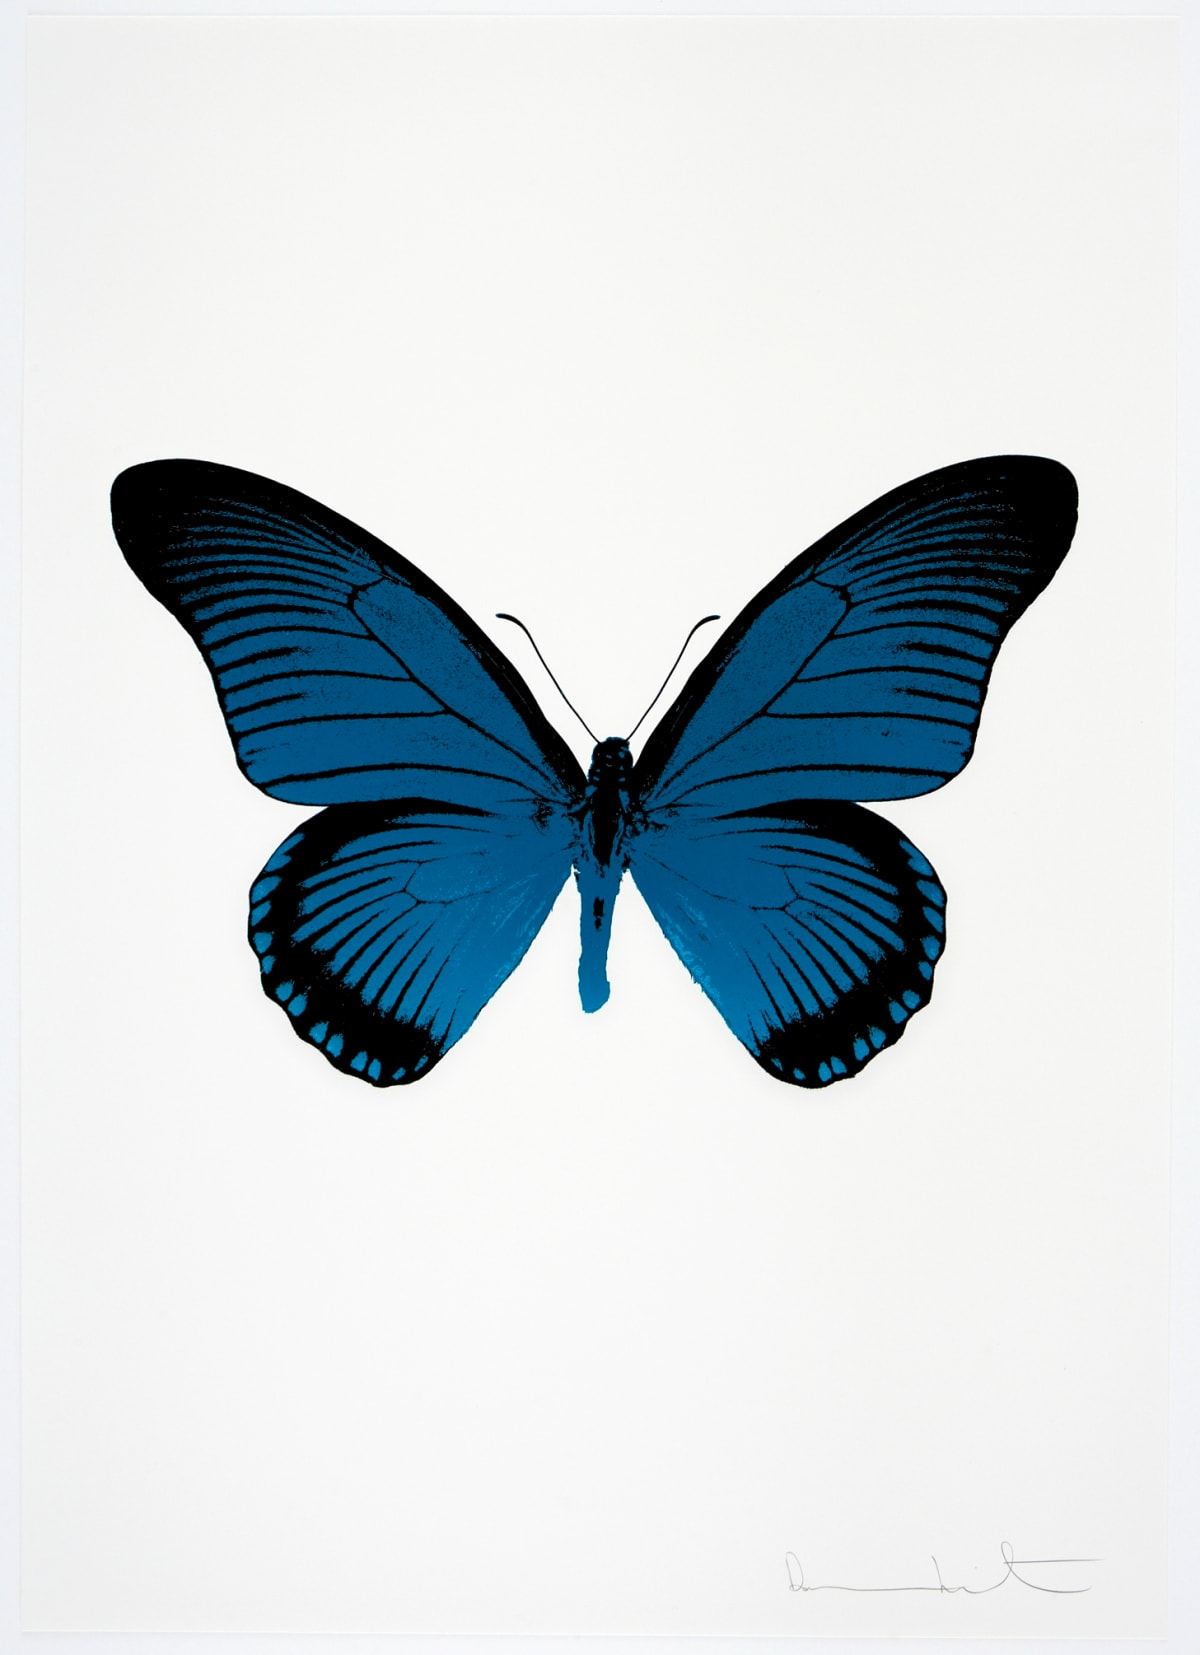 Damien Hirst The Souls IV - Turquoise/Raven Black Damien Hirst butterfly foil print for sale Damien Hirst print for sale , 2010 2 colour foil block on 300gsm Arches 88 archival paper. Signed and numbered. Published by Paul Stolper and Other Criteria 72 x 51cm OC7978 / 1418-1 Edition of 15